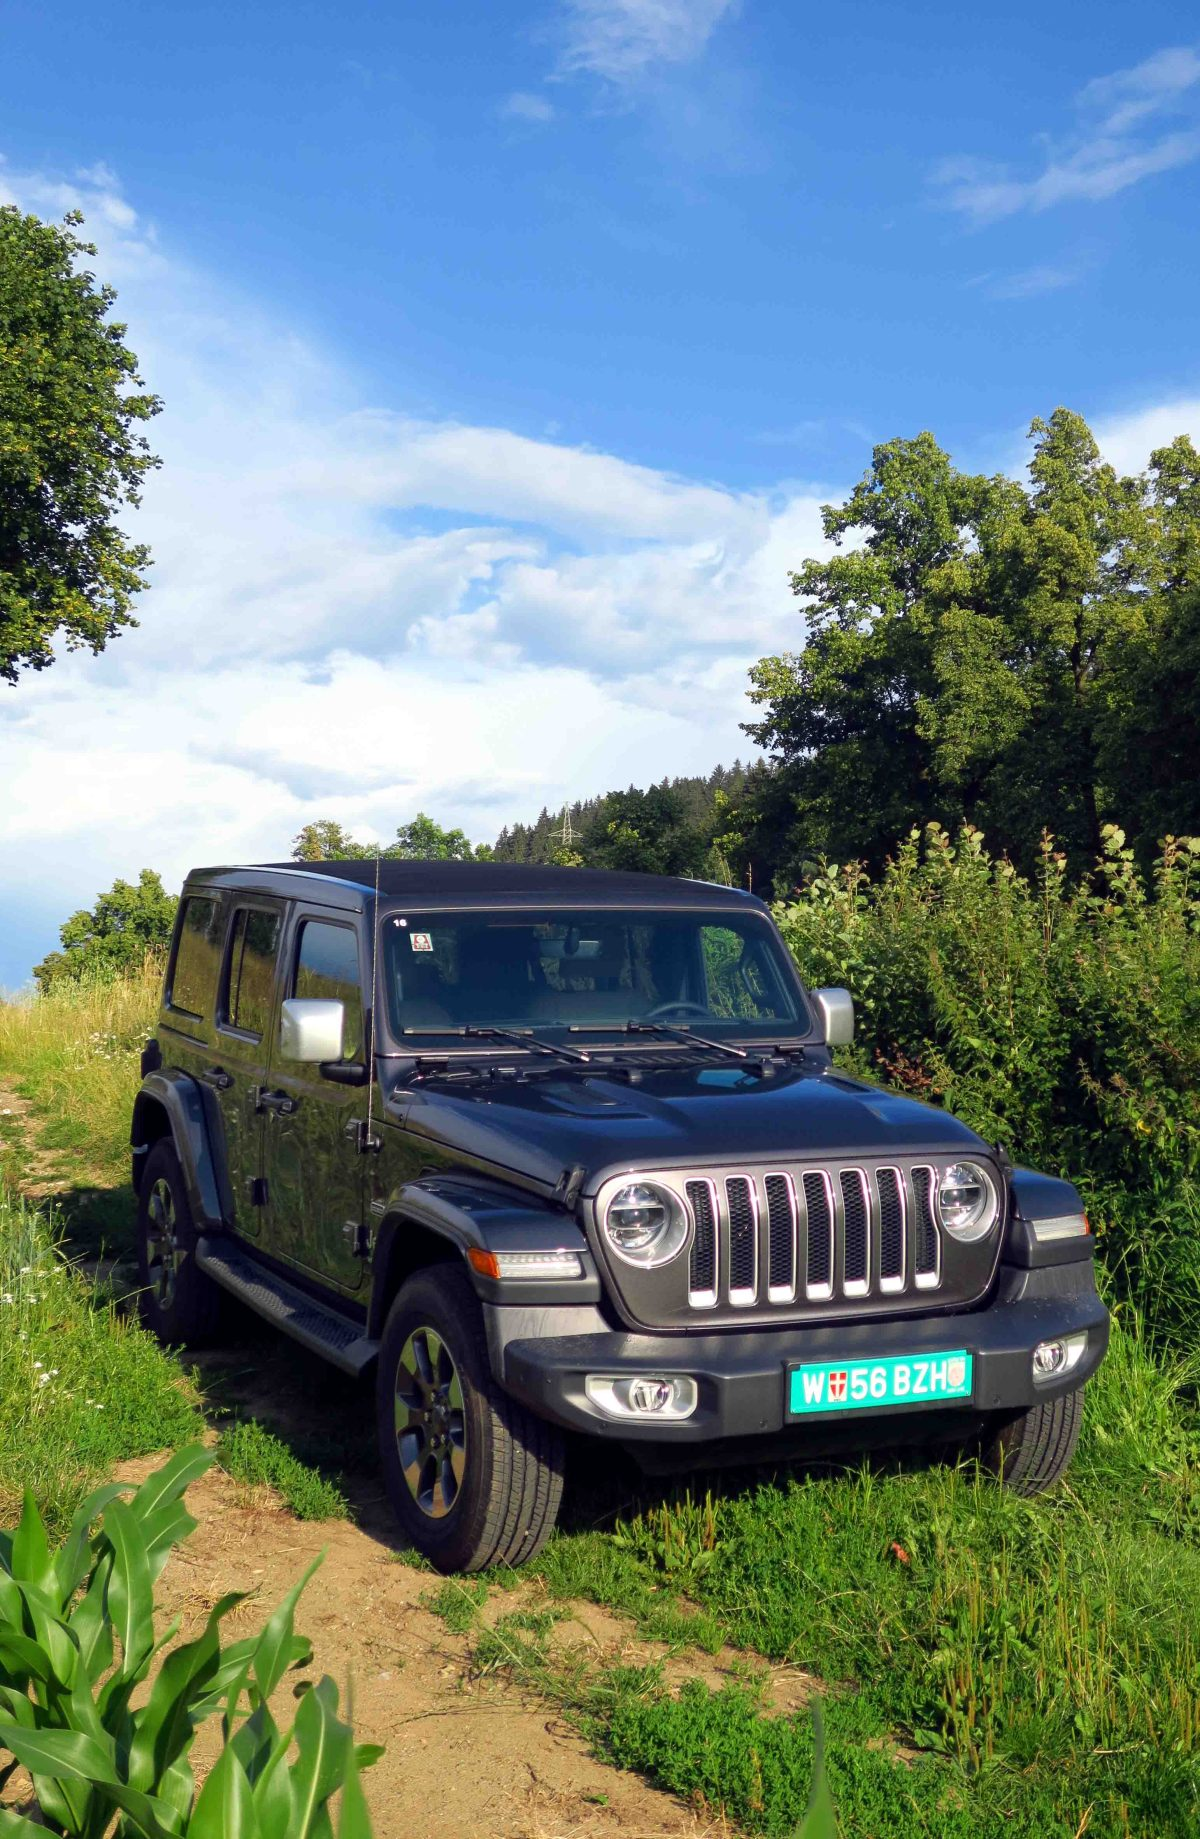 We drove the new Jeep Wrangler: sheer authenticity on wheels